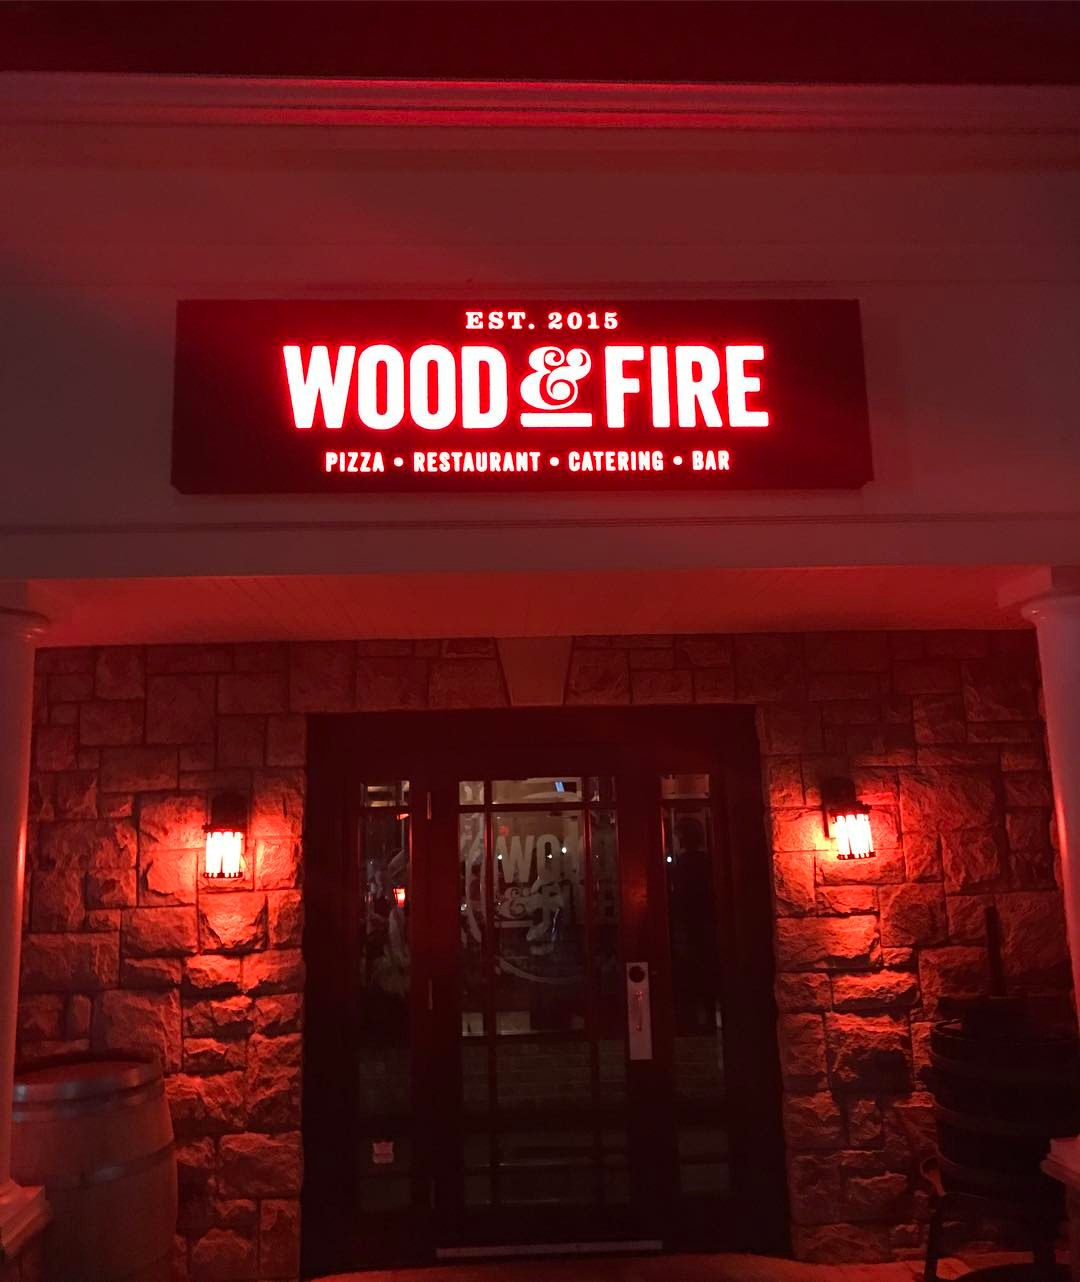 Wood & Fire's exterior. | Photo by Wood & Fire via Facebook